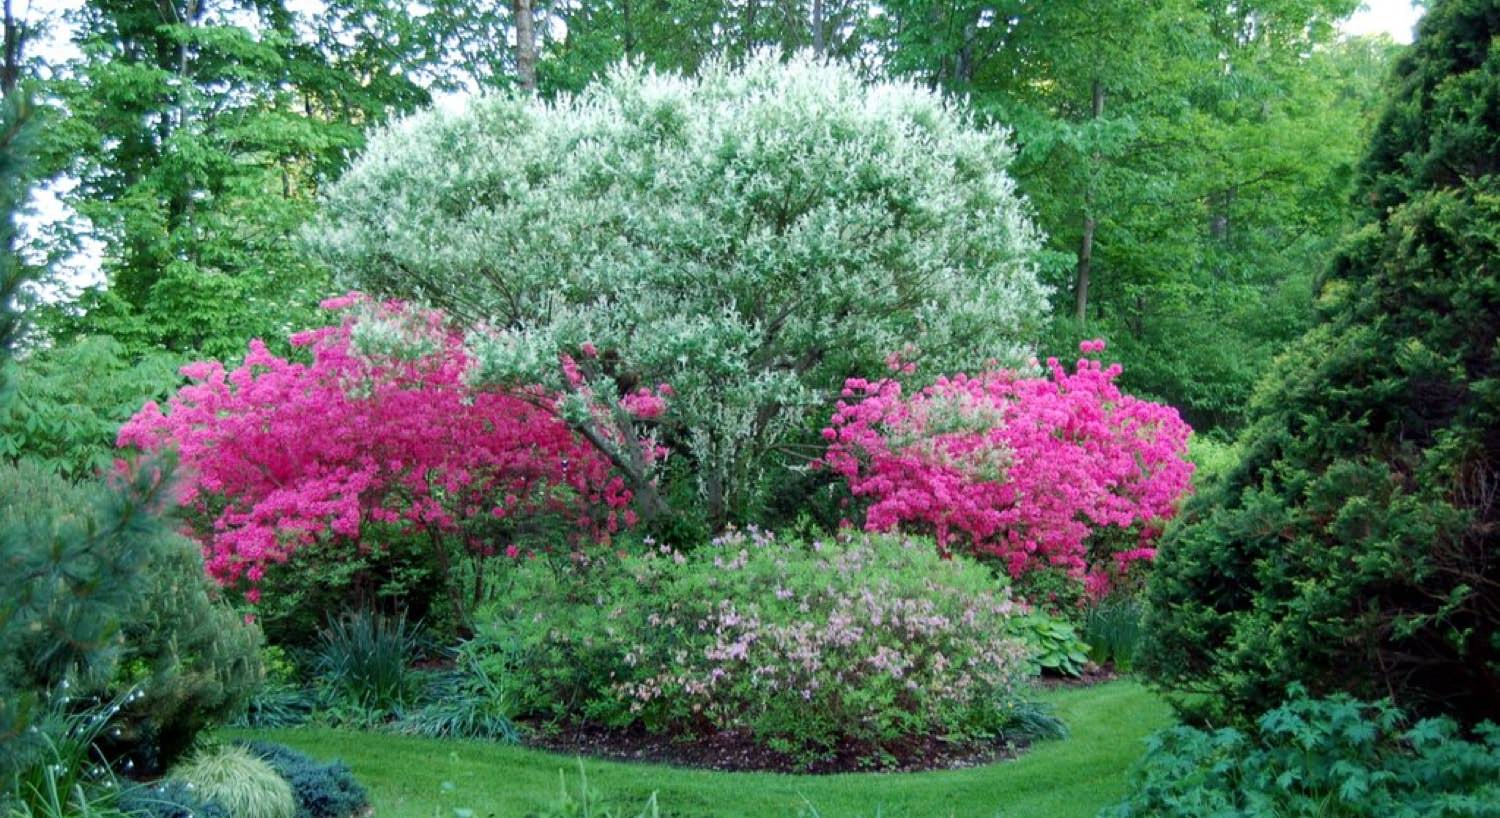 Gorgeous lush green trees, flowering white tree and two vibrant pink flowering trees